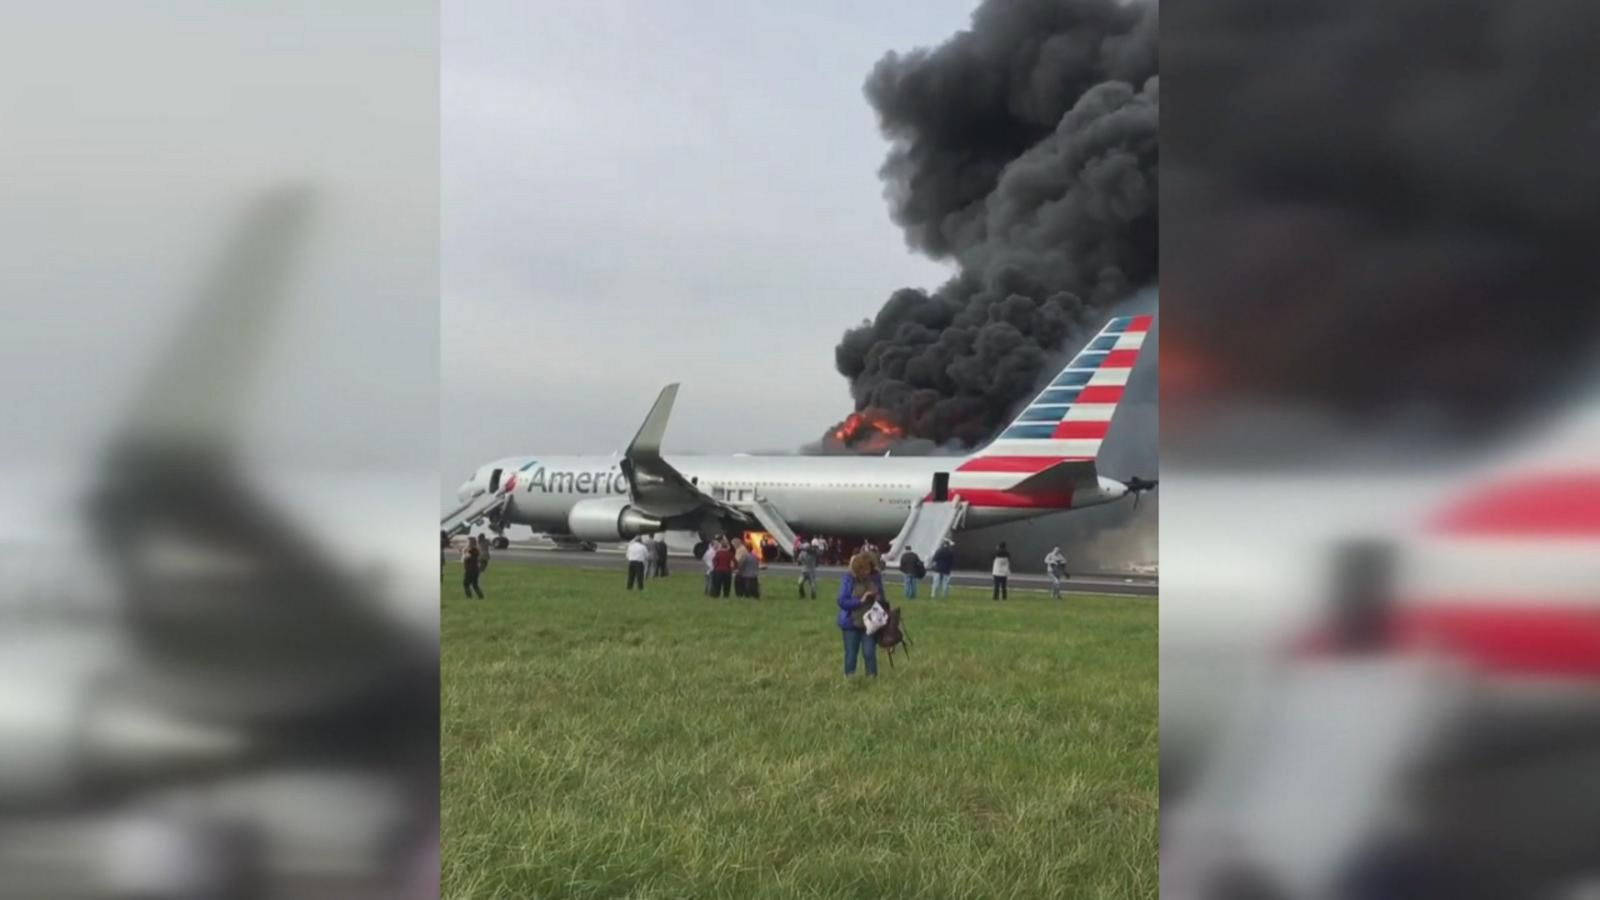 A passenger recorded video of the intense flames and heavy smoke on the plane.